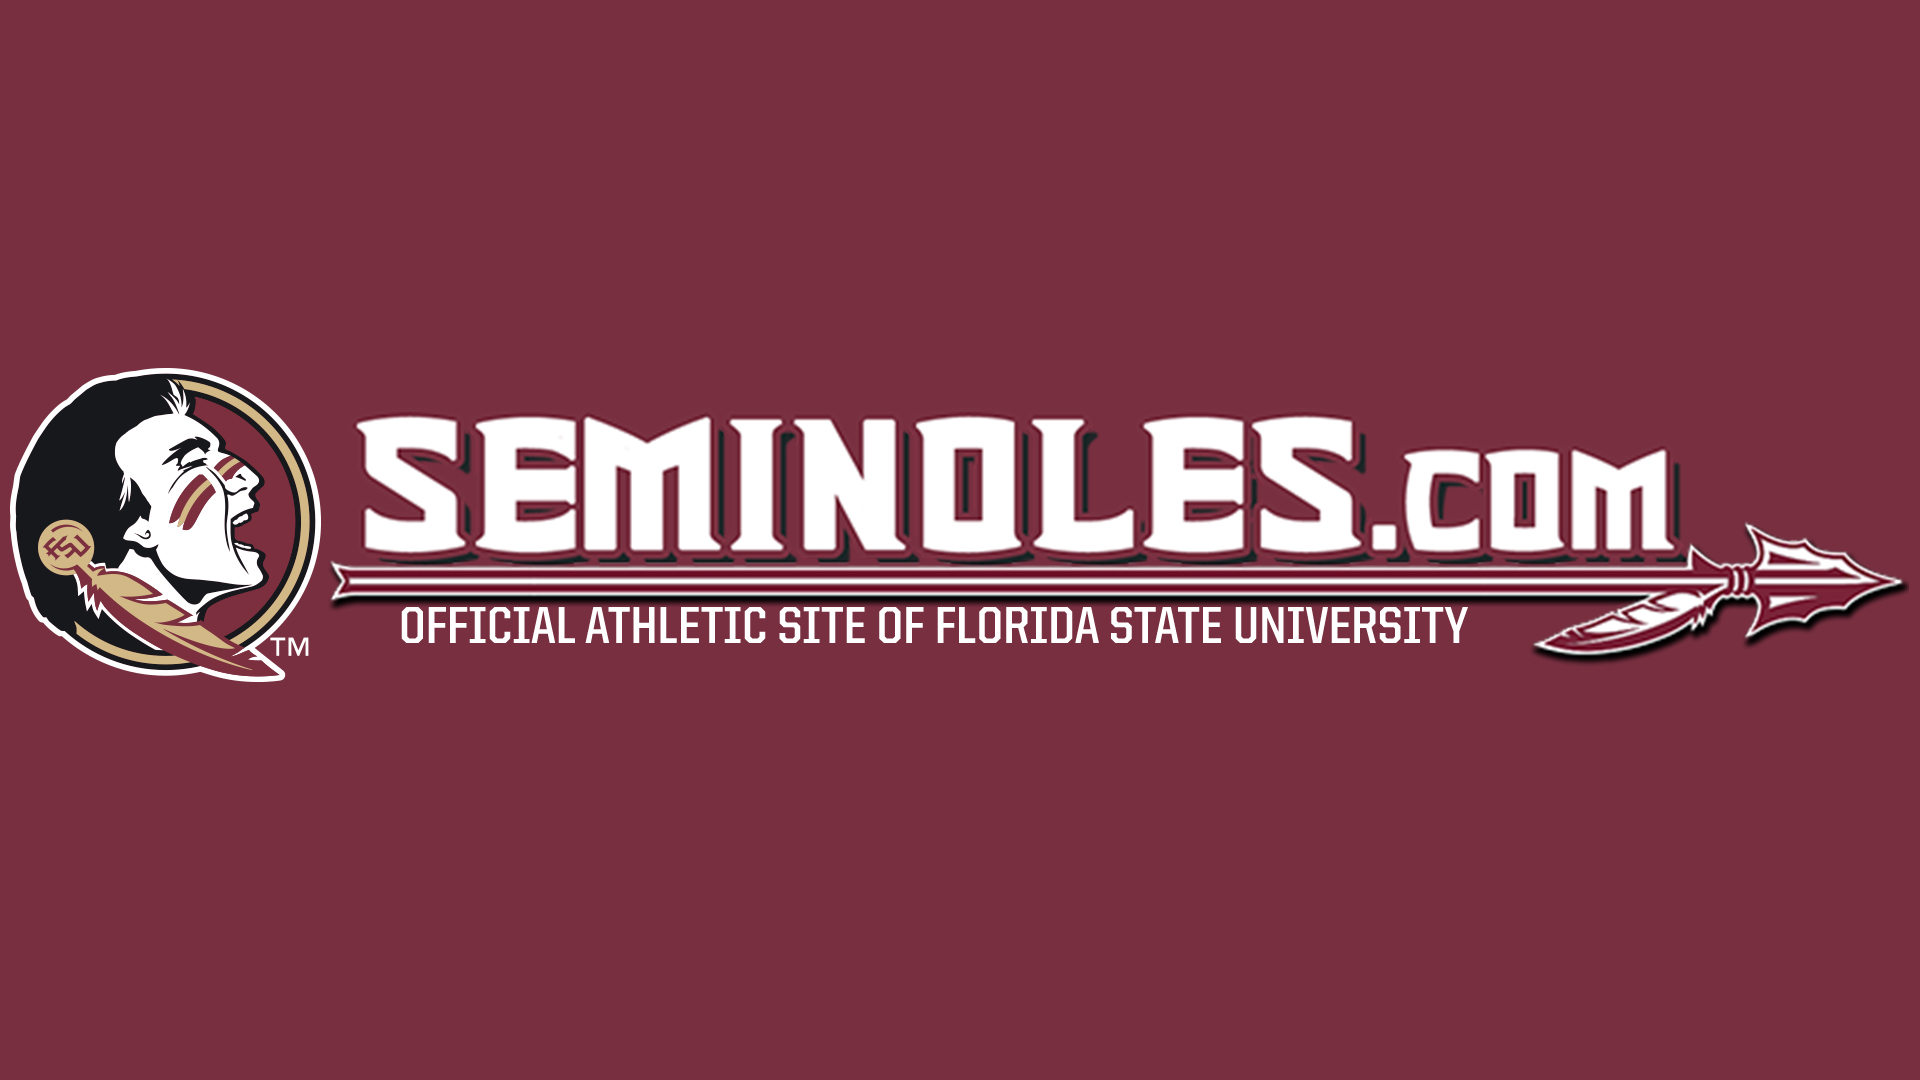 SEMINOLESCOM DESKTOP WALLPAPERS 1920x1080